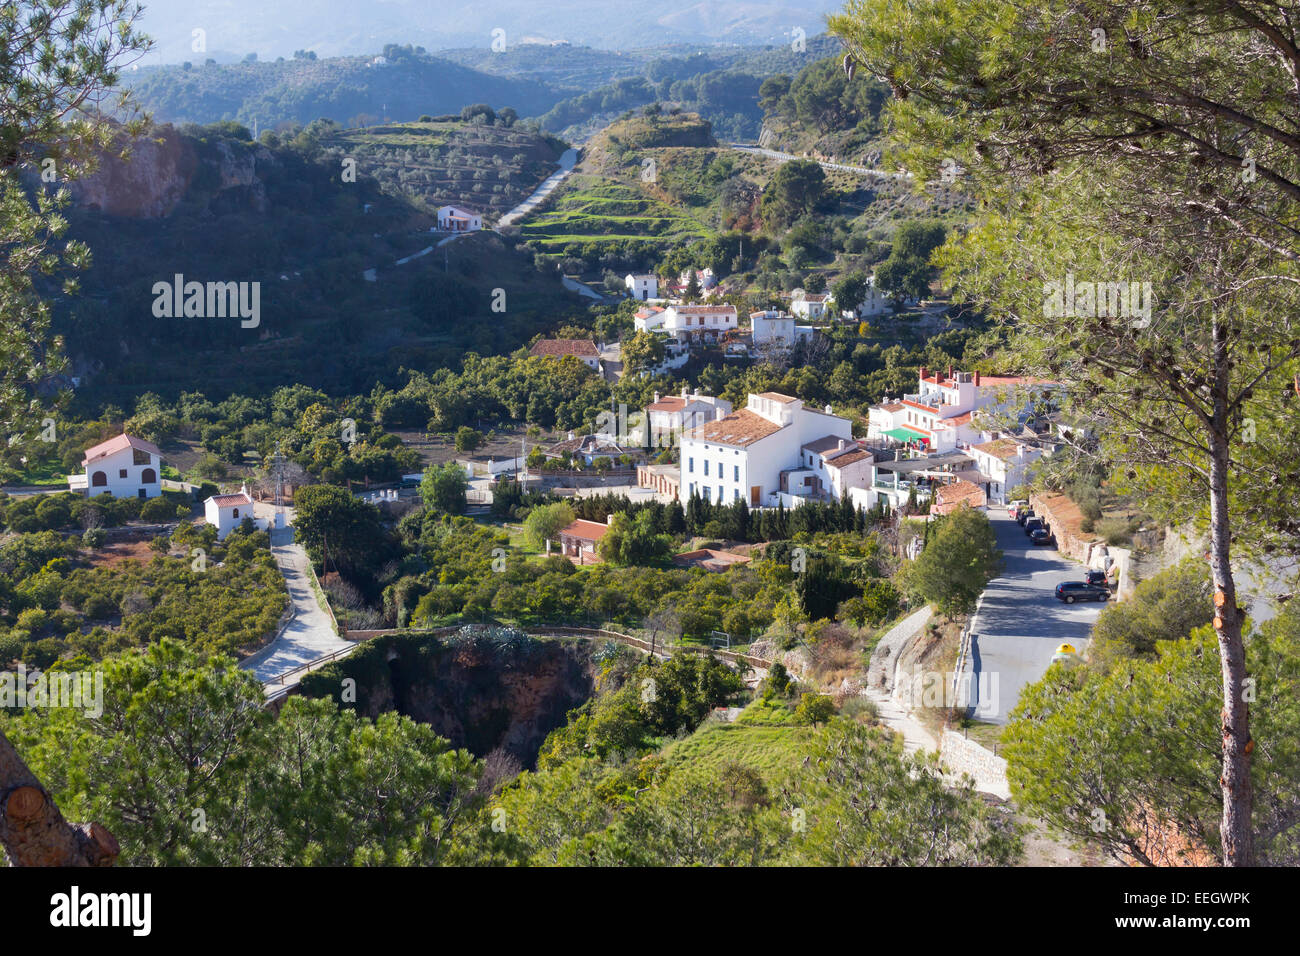 Jorox,  Alozaina, Málaga, Andalucía, Spain. This small hamlet had a total 0f 24 inhabitants in 2012. - Stock Image